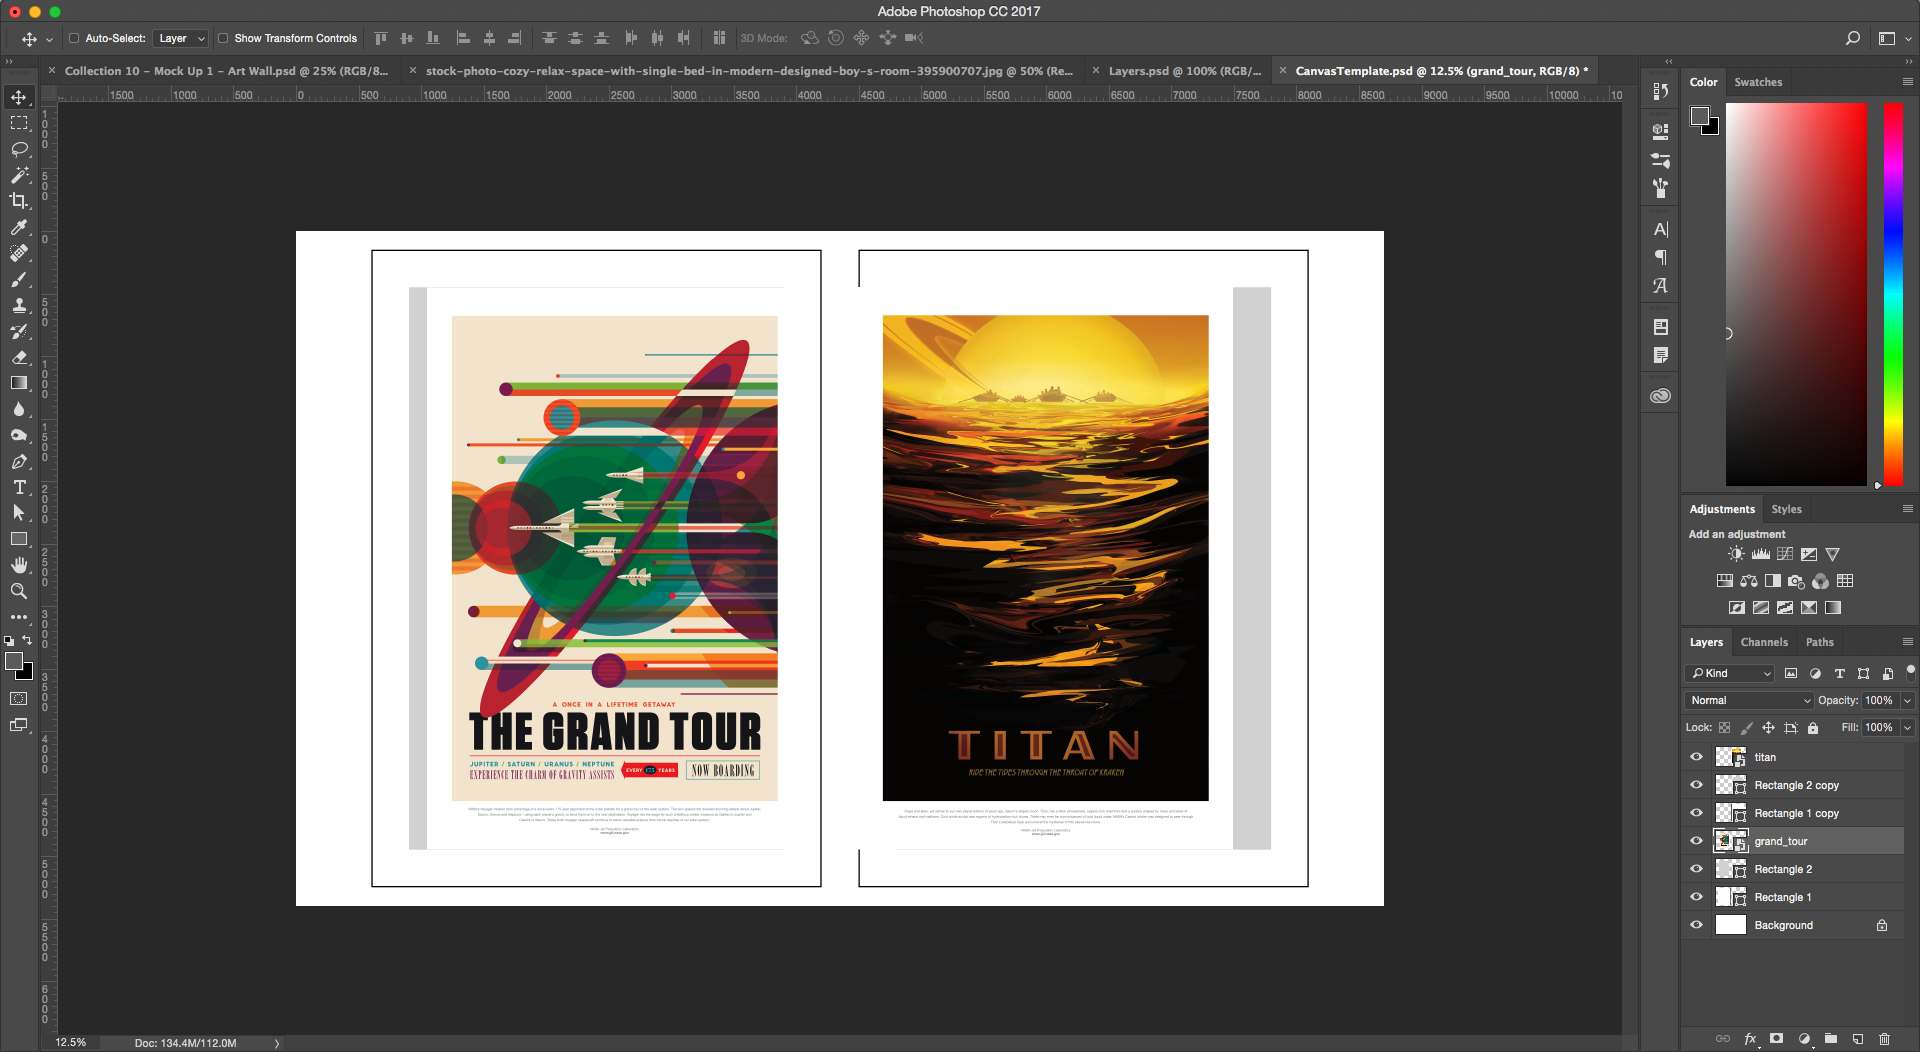 Poster design your own - Drag And Drop Your Poster Designs Of Choice Into The File Place Each One Over A Grey Rectangle Making Sure That The Poster Layer Is Directly Above Its